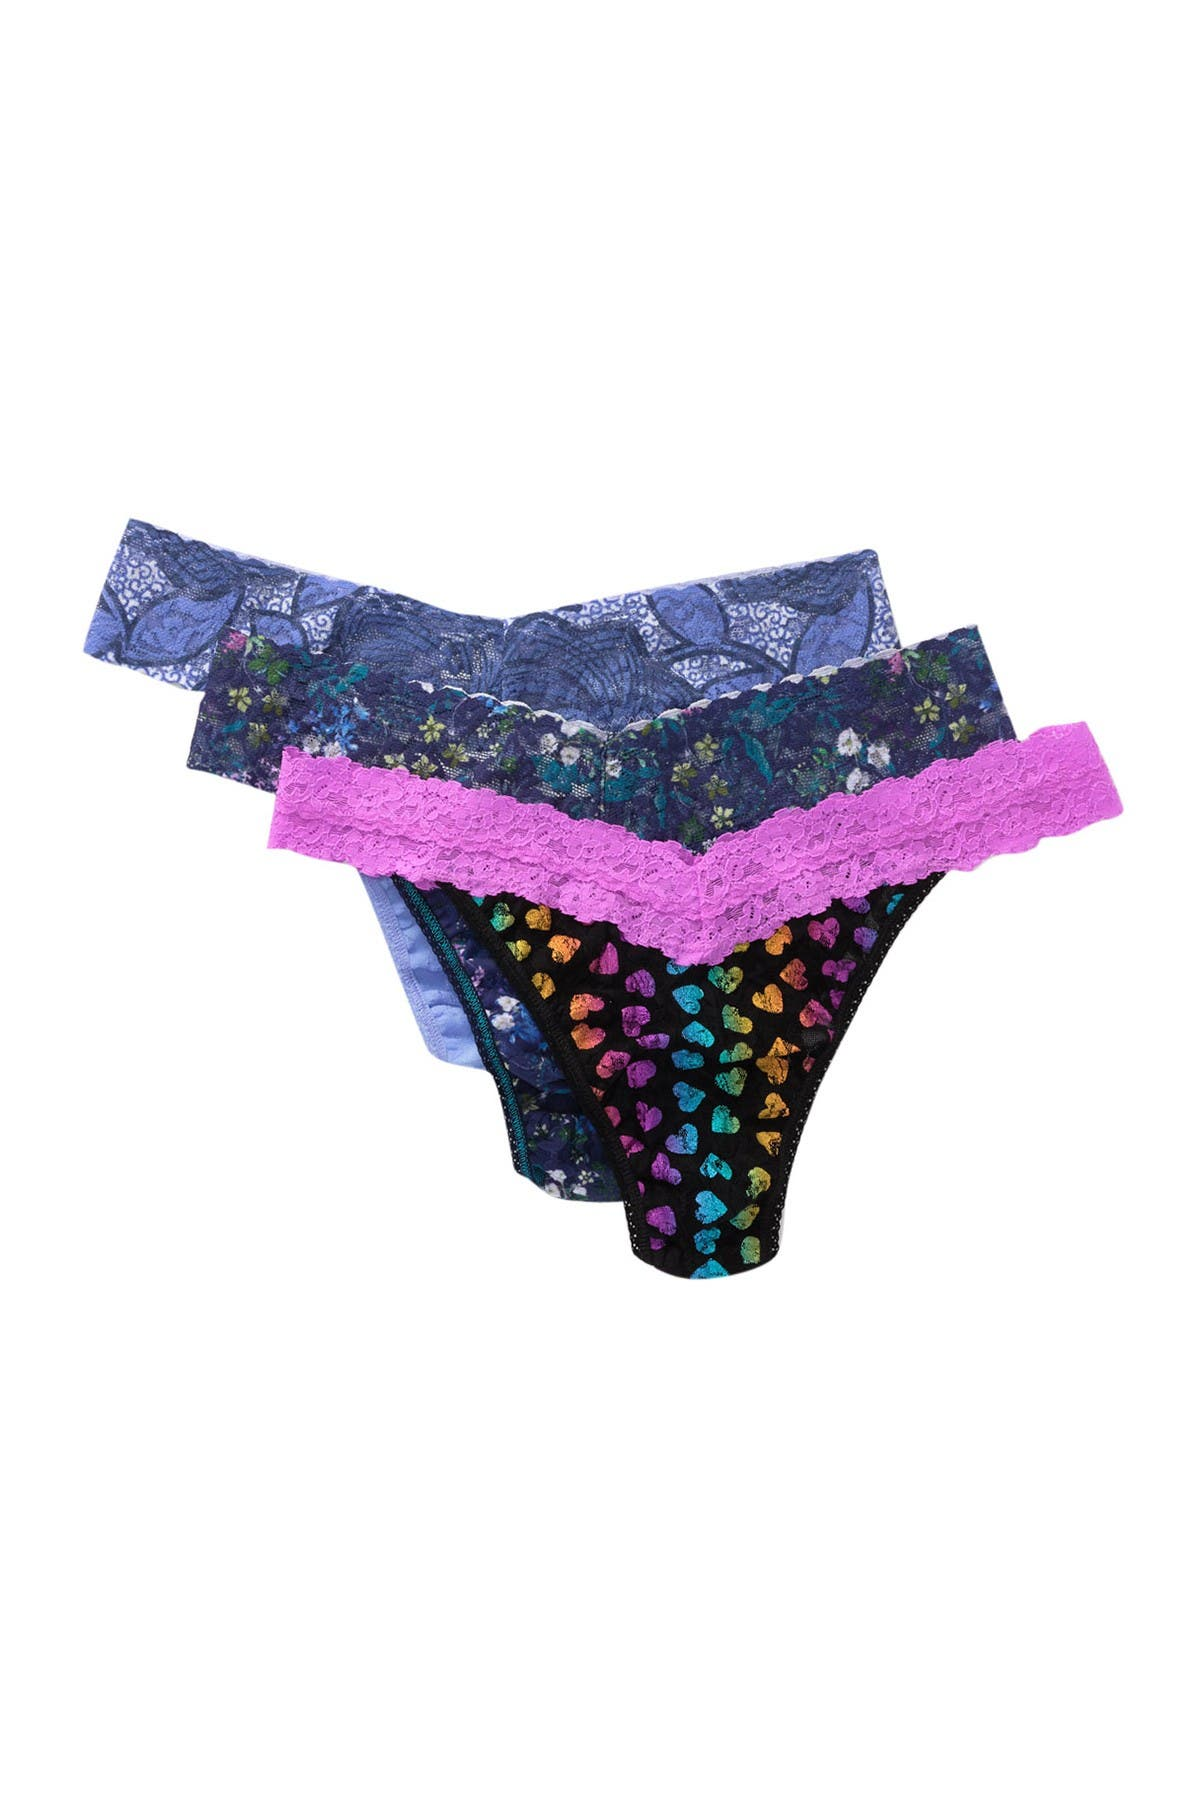 Image of Hanky Panky Original Rise Lace Thongs - Pack of 3